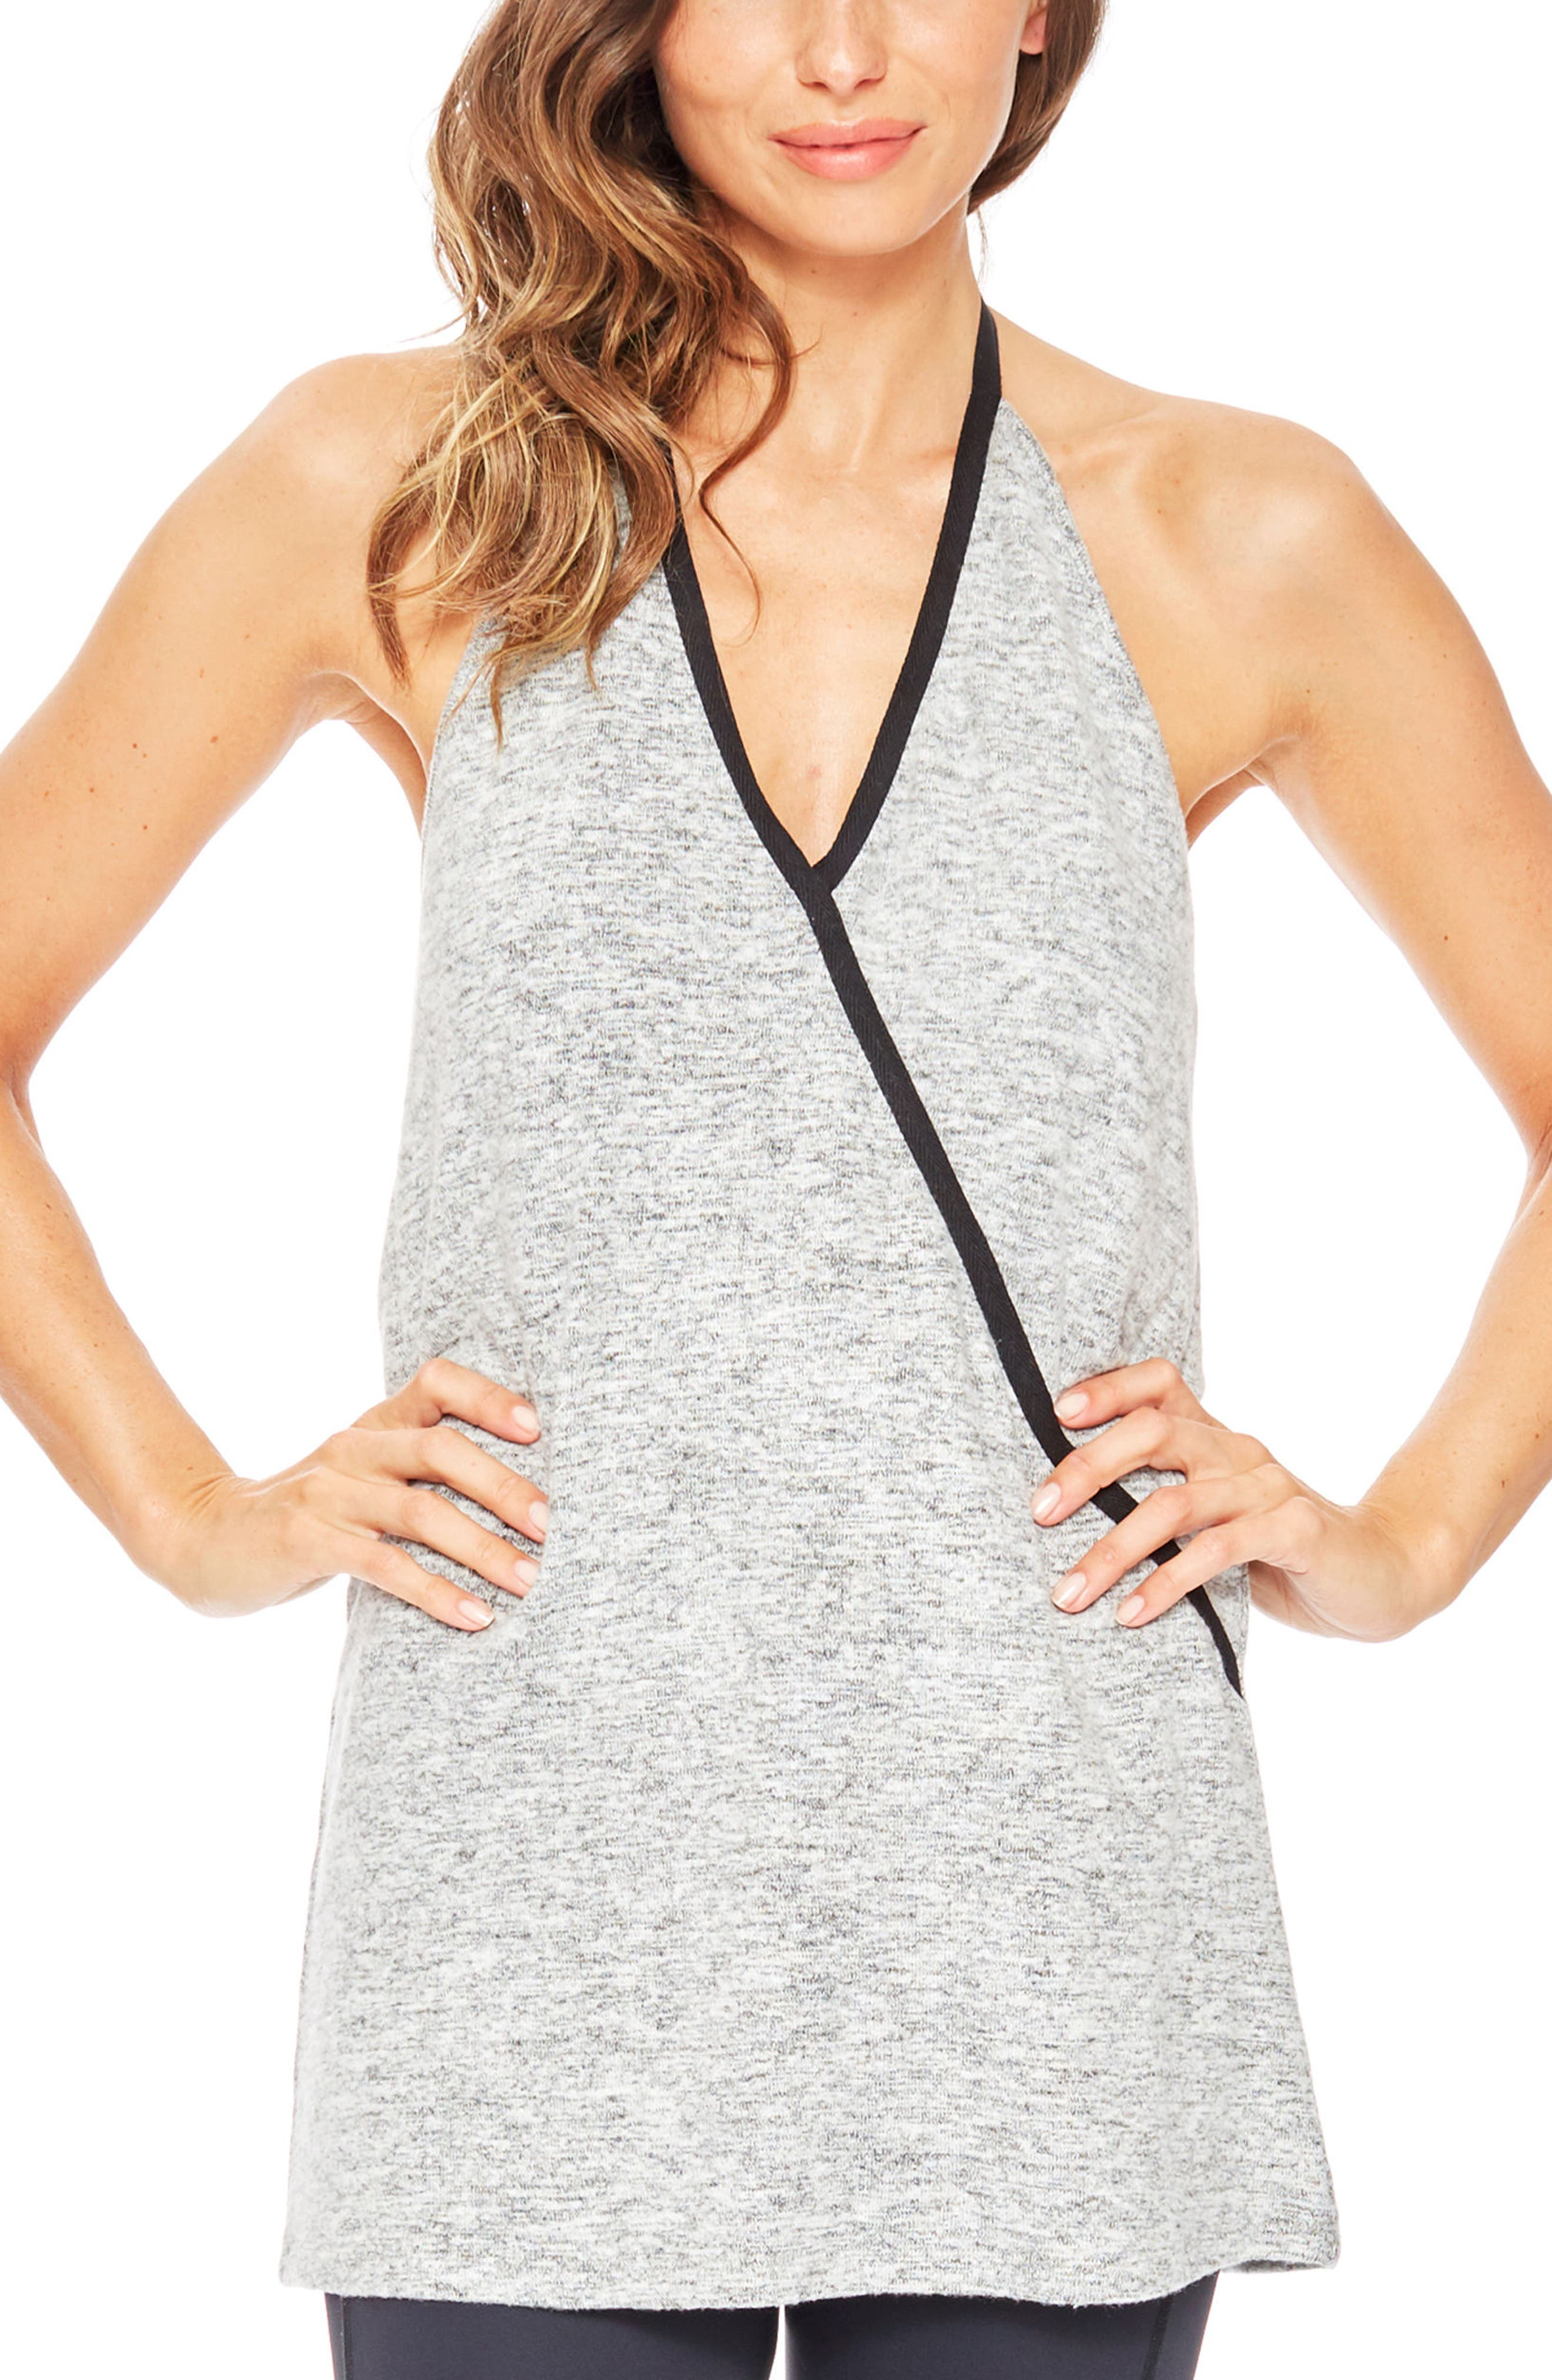 Alternate Image 1 Selected - Rosie Pope Michelle Maternity Tank